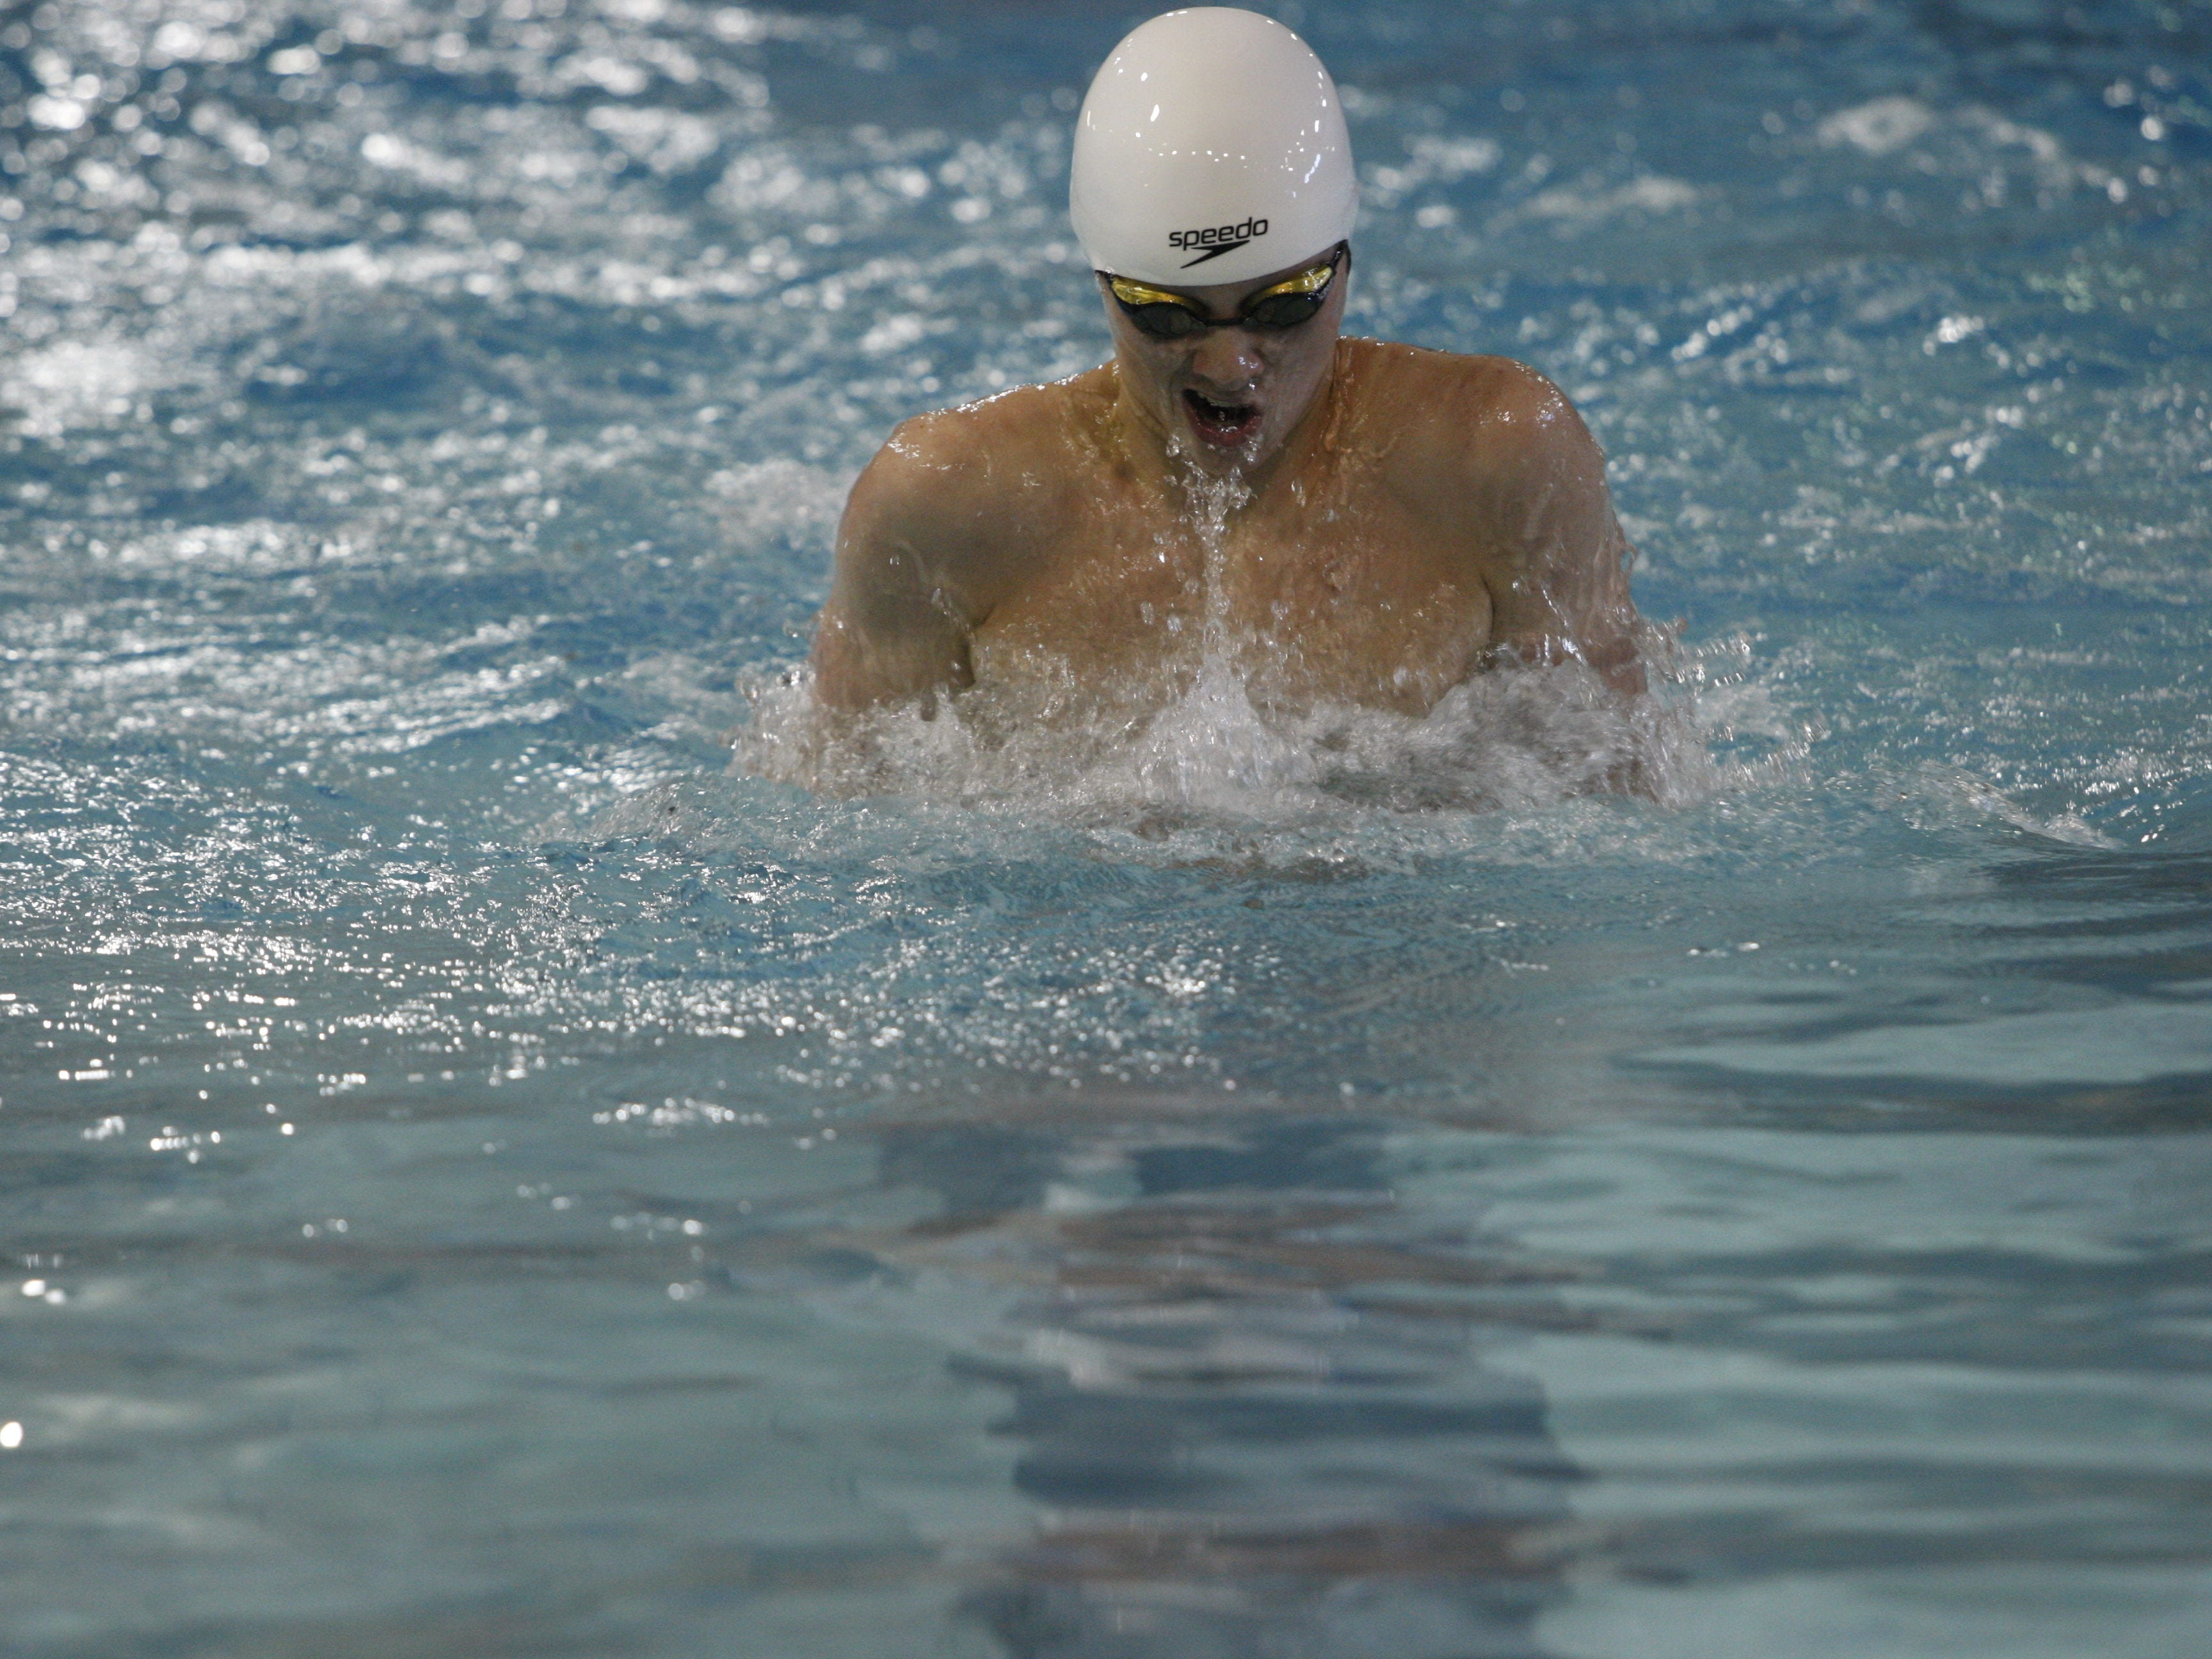 Ankeny's John Breen swims the breaststroke leg of the 200 medley relay during the state meet on Saturday at Marshalltown. Breen helped the Hawks to an 11th-place finish in the event. He teamed up with Jeff Hyler, Will Martin and Zach Deaton to post a time of 1:37.88.